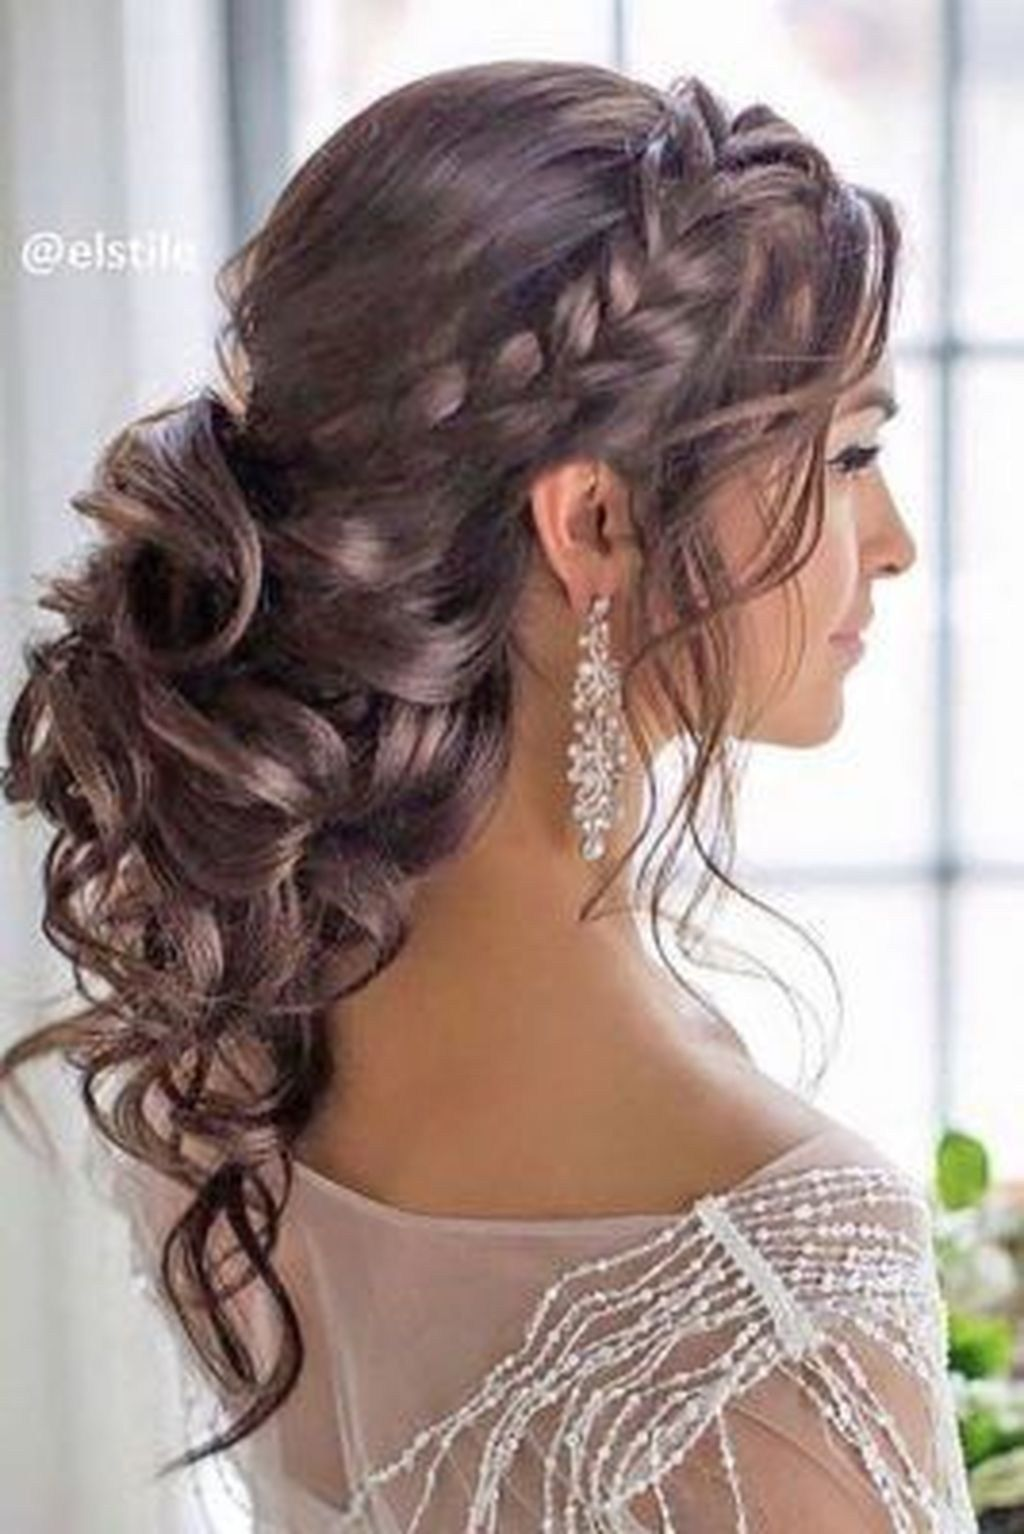 Beautiful wedding updo hairstyle also perfect for a formal event